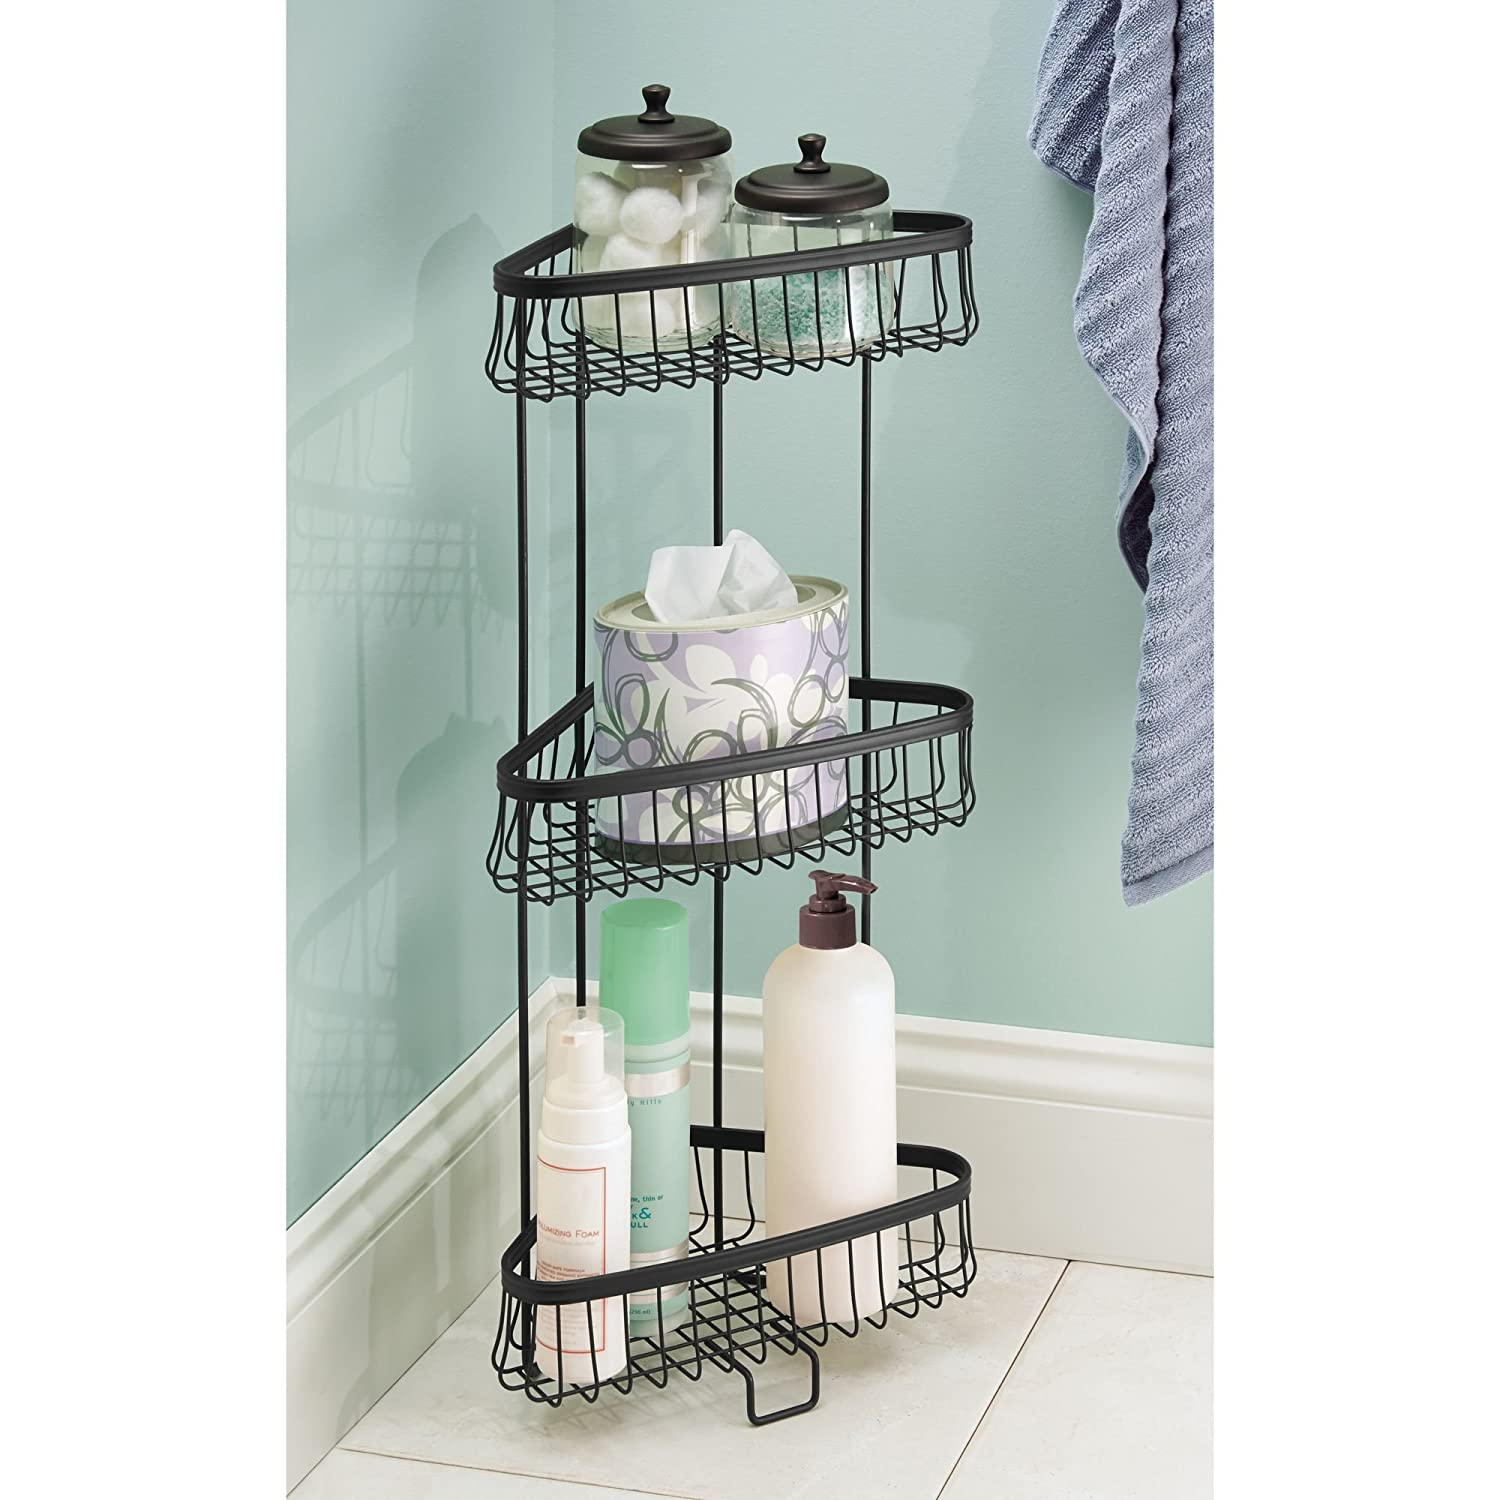 Amazon.com: mDesign Free Standing Bathroom Storage Shelves for ...